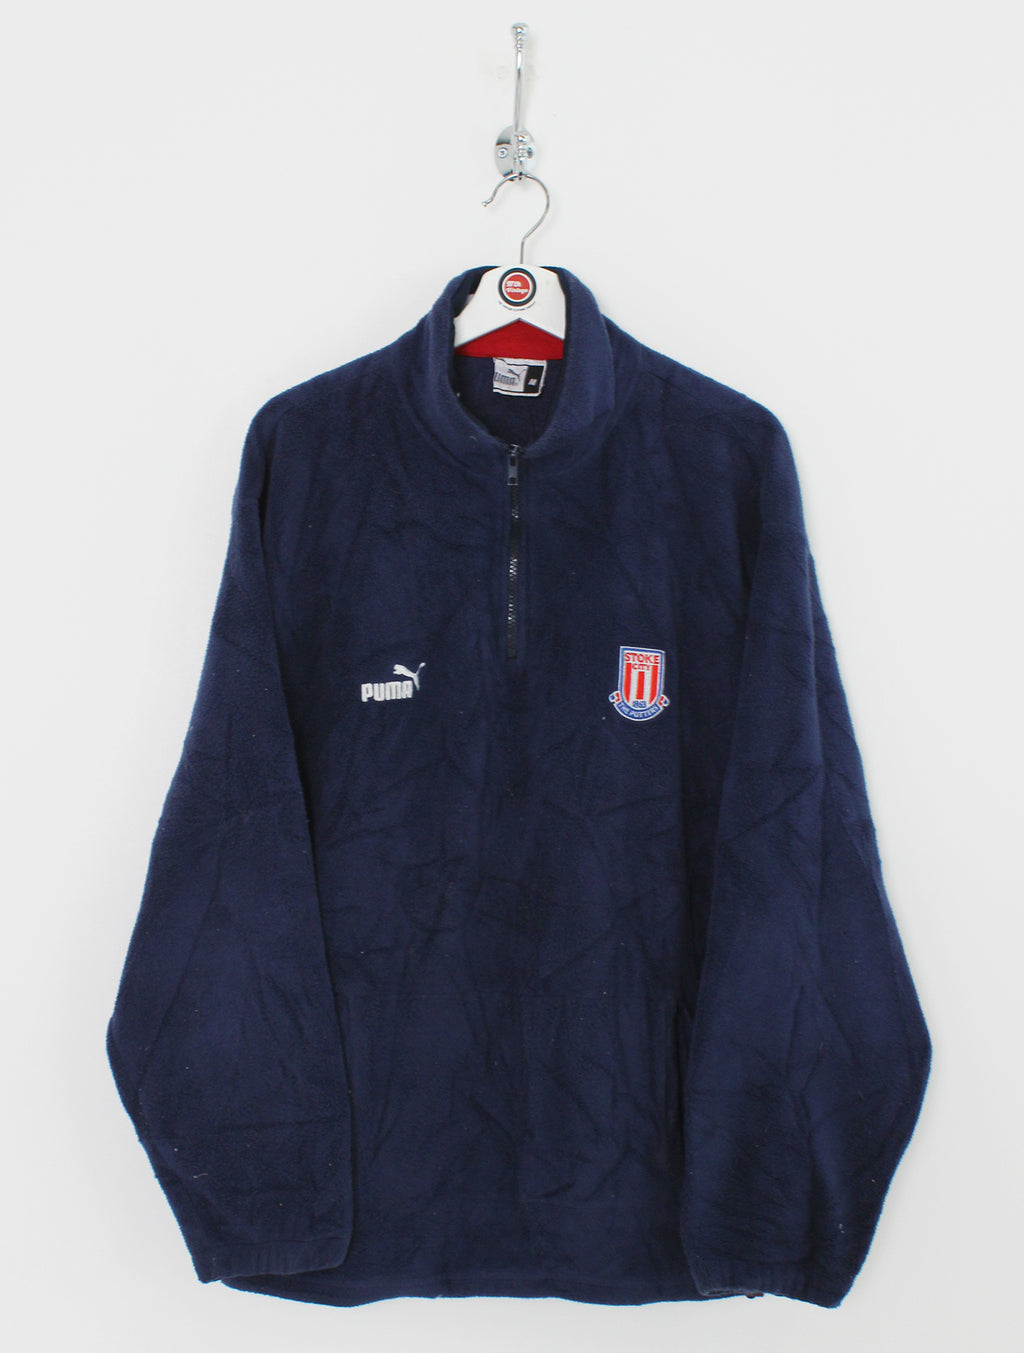 Puma Stoke City Fleece (M)